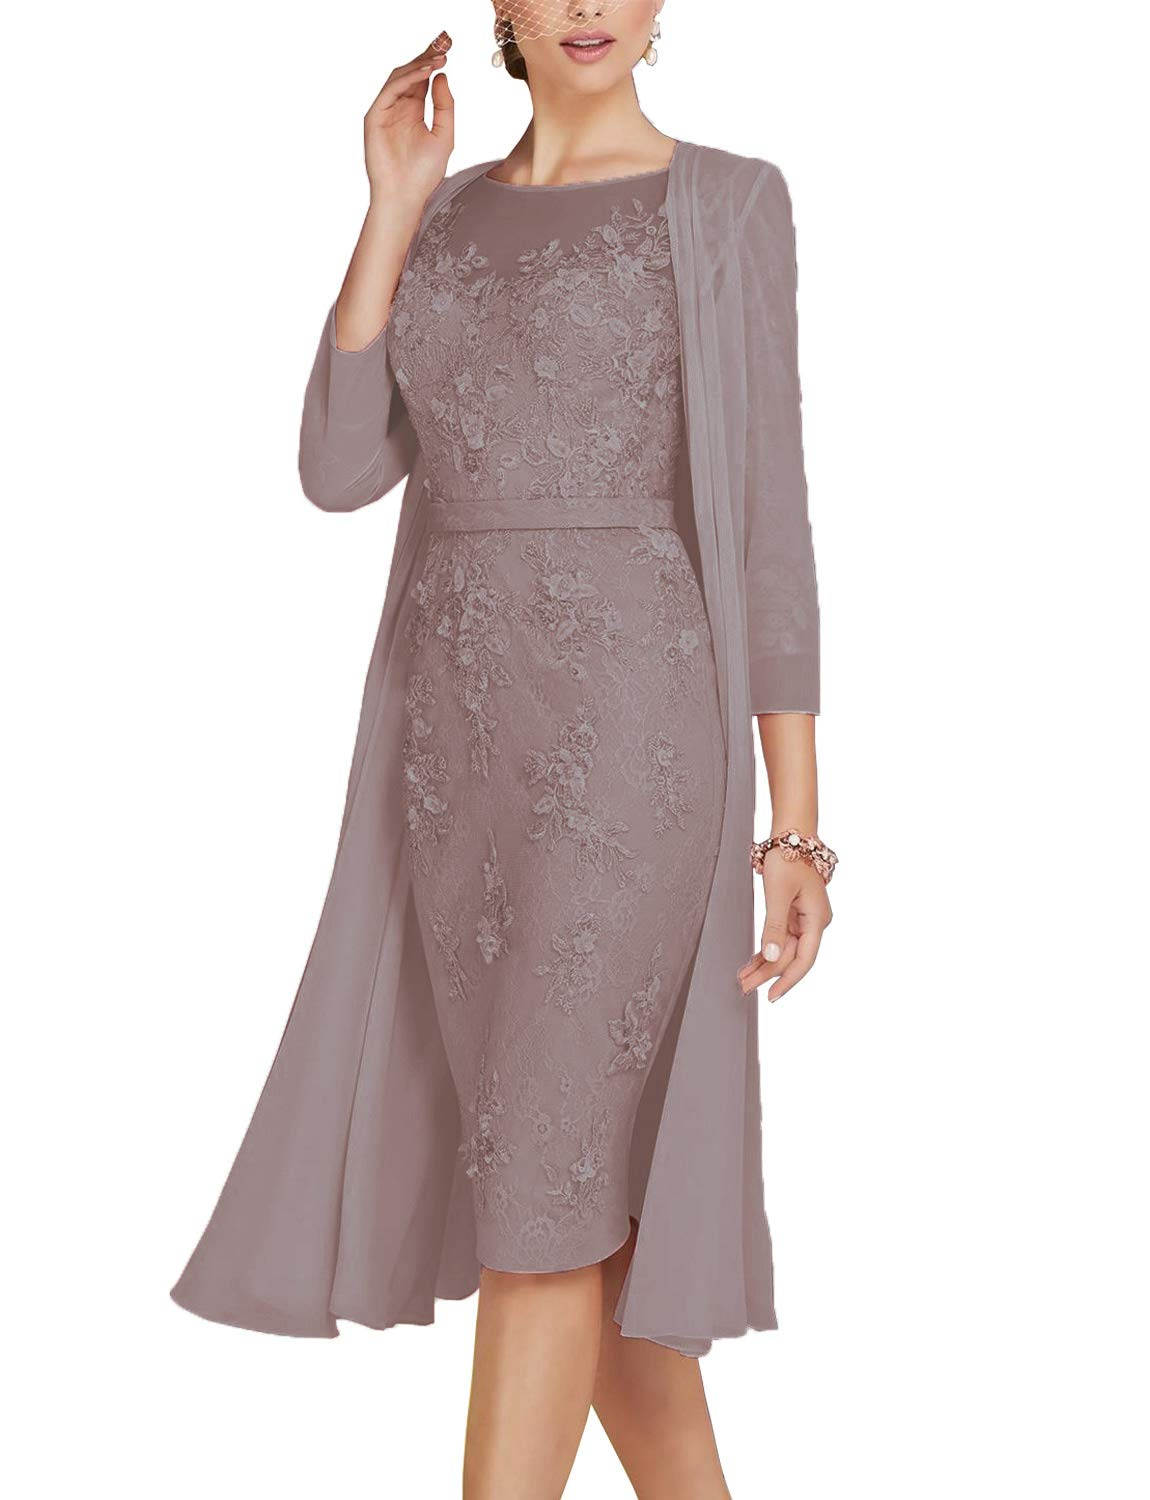 e674abfb03 Newdeve Lace Mother of The Bride Dresses Tea Length Sheath 3 4 Sleeves with  Chiffon Jacket Silver Grey